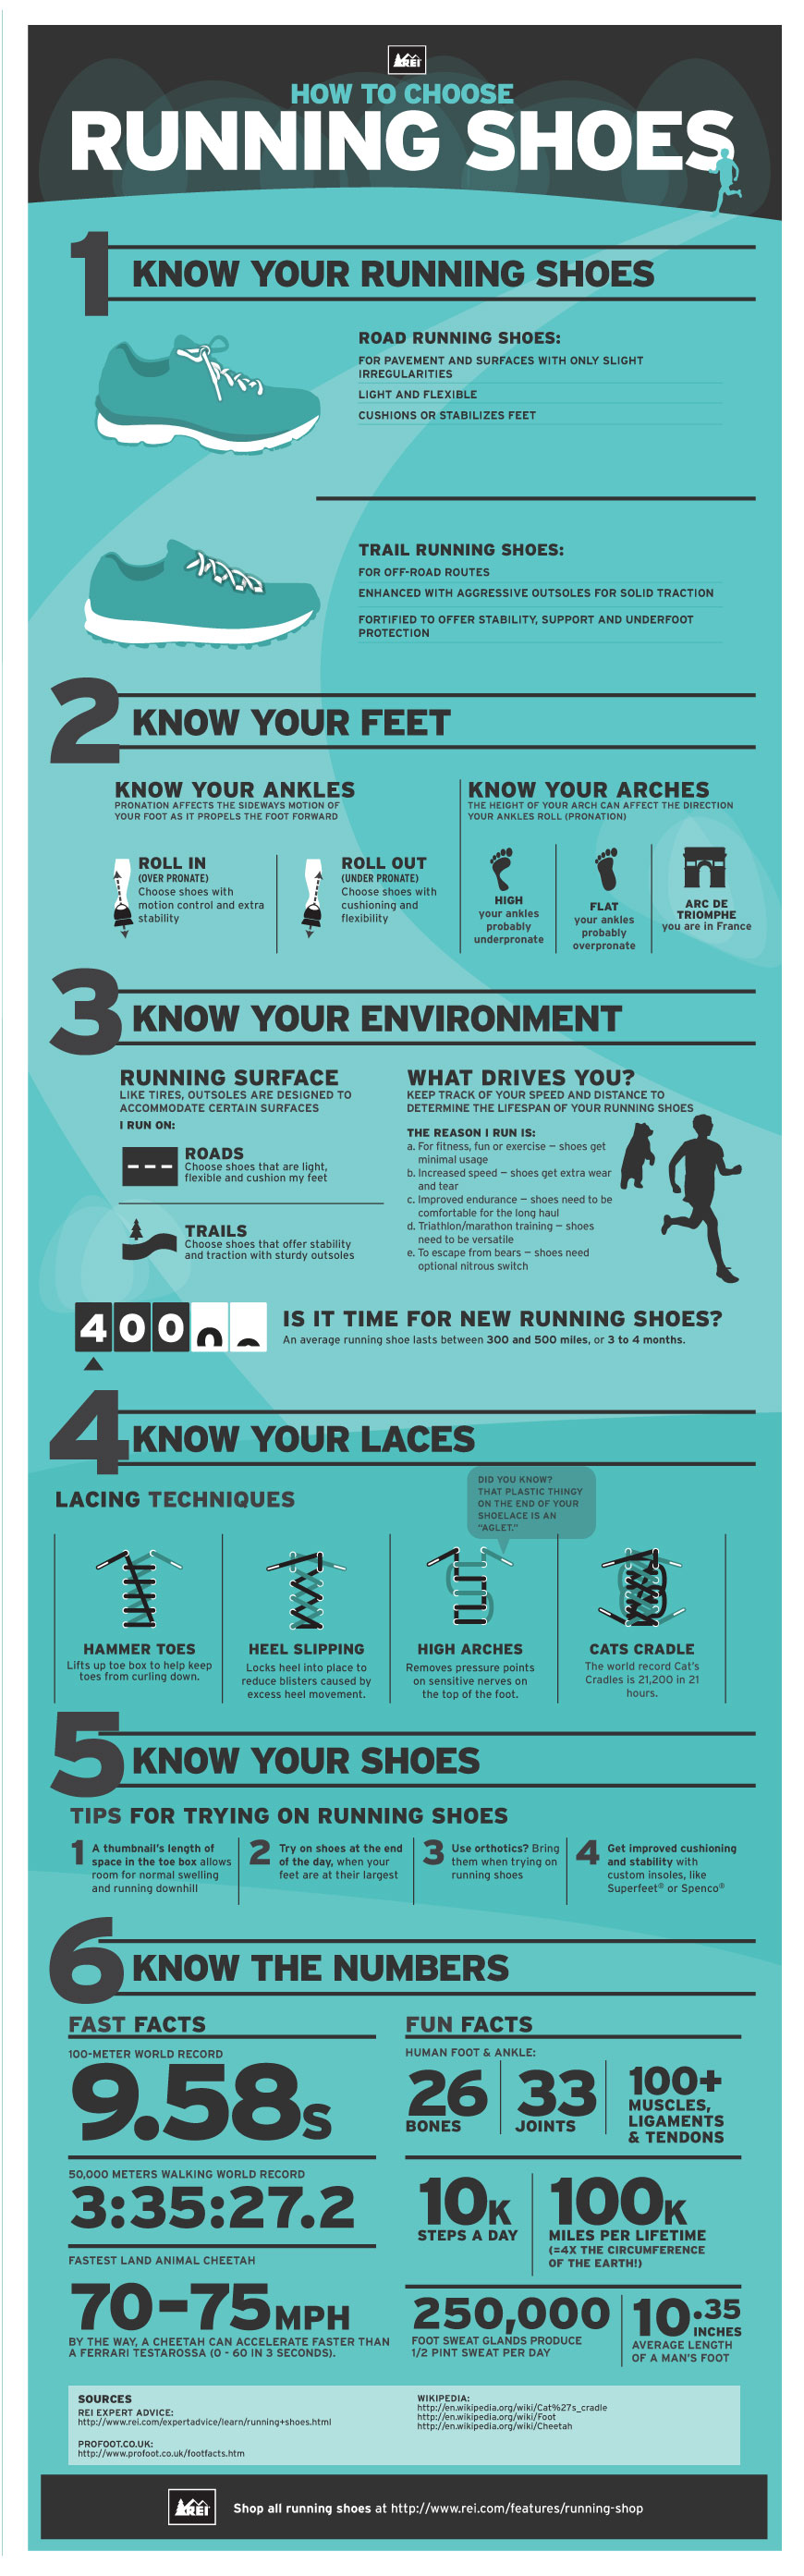 How to choose your running shoe